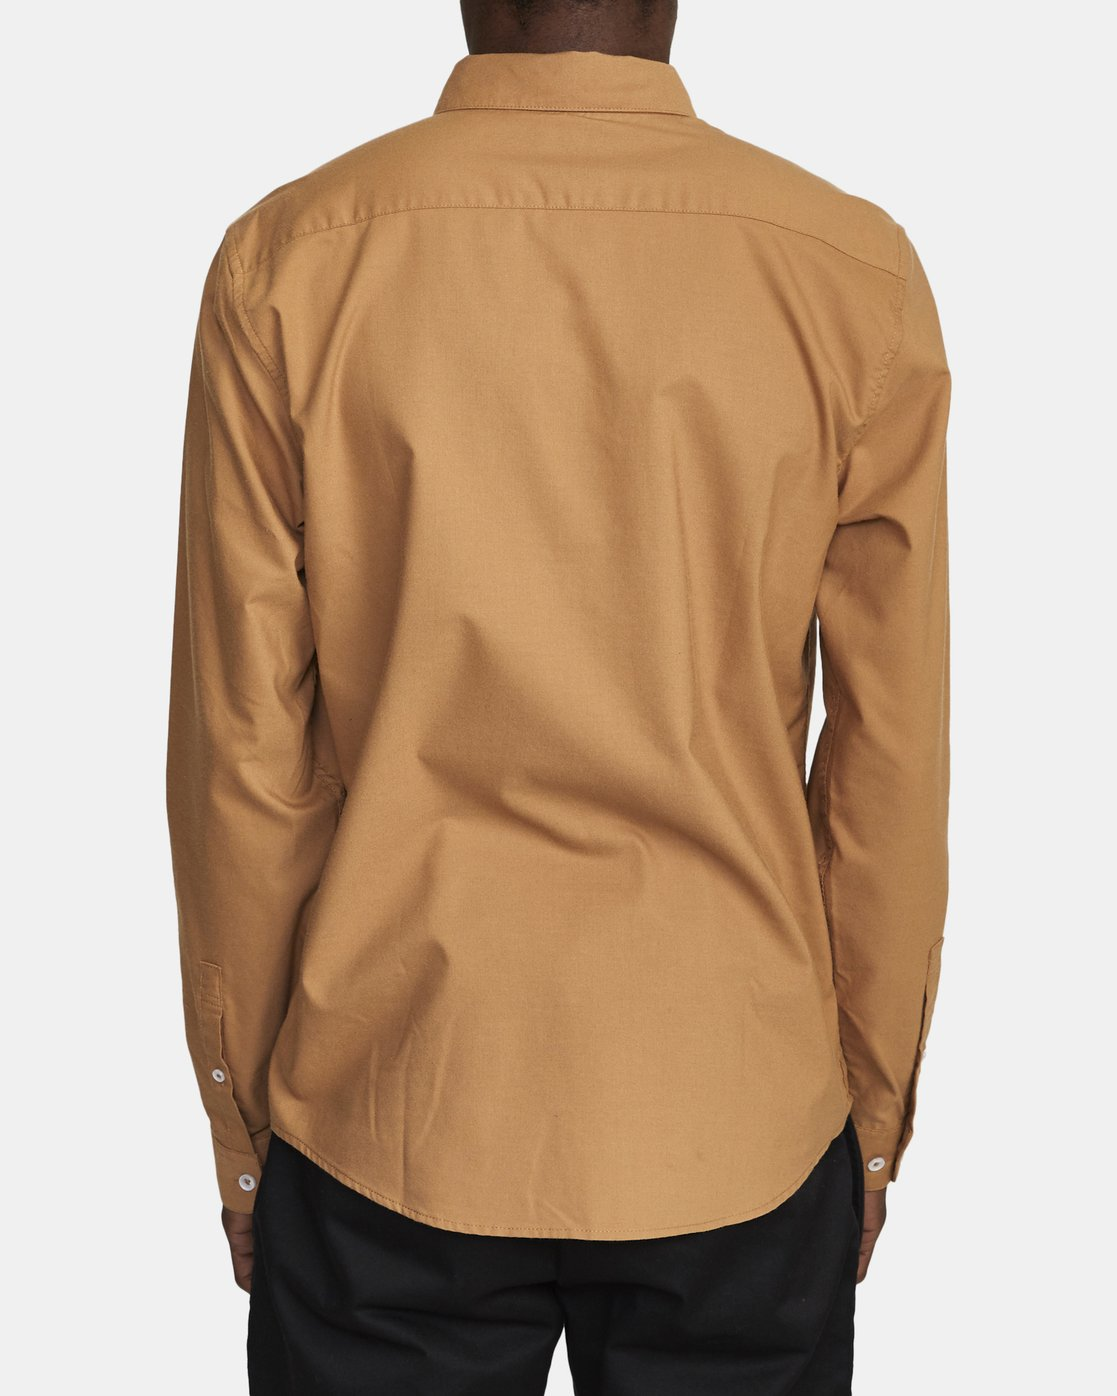 3 THATLL DO STRETCH LONG SLEEVE SHIRT Brown M551VRTD RVCA